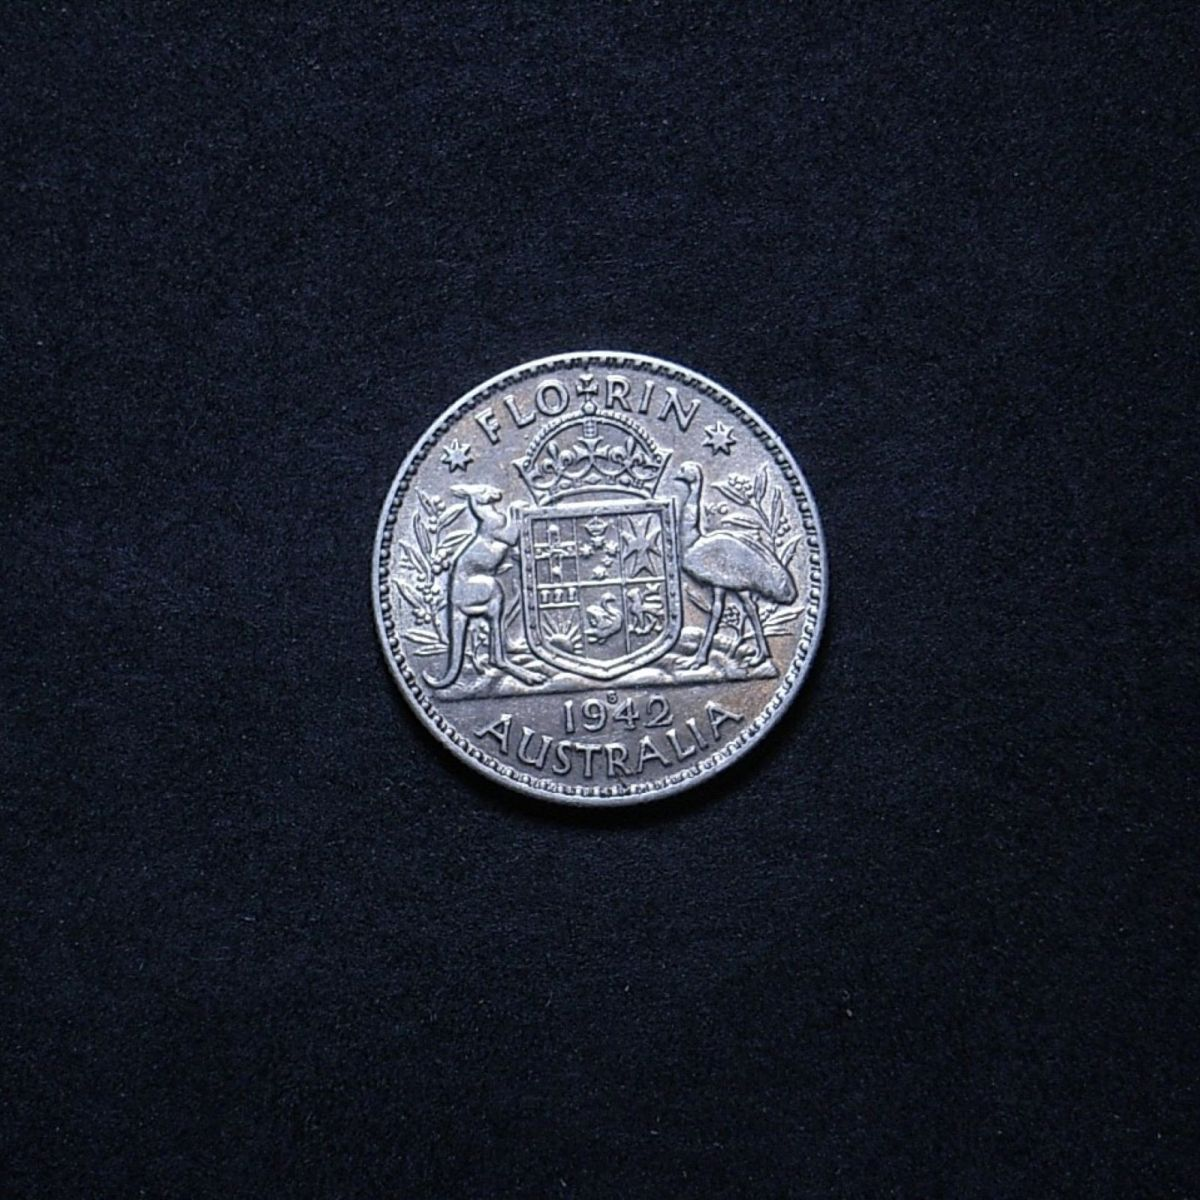 Aus Florin 1942s reverse showing overall appearance